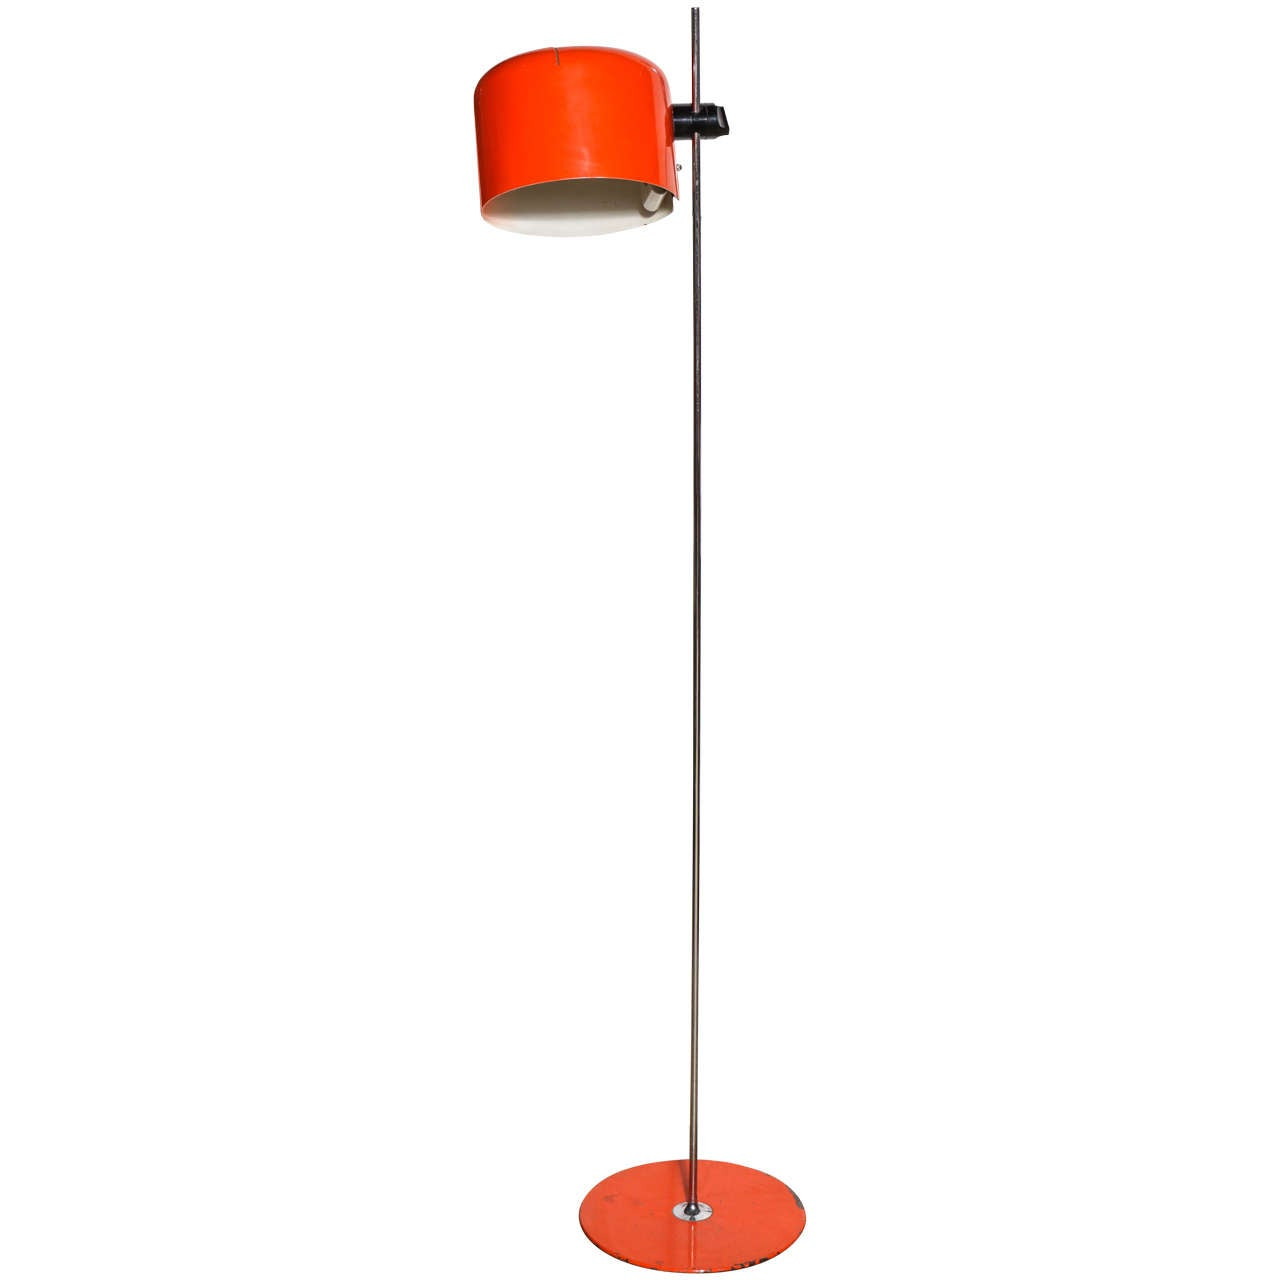 1960s joe colombo for o luce coupe floor lamp with orange shade 1960s joe colombo for o luce coupe floor lamp with orange aloadofball Images